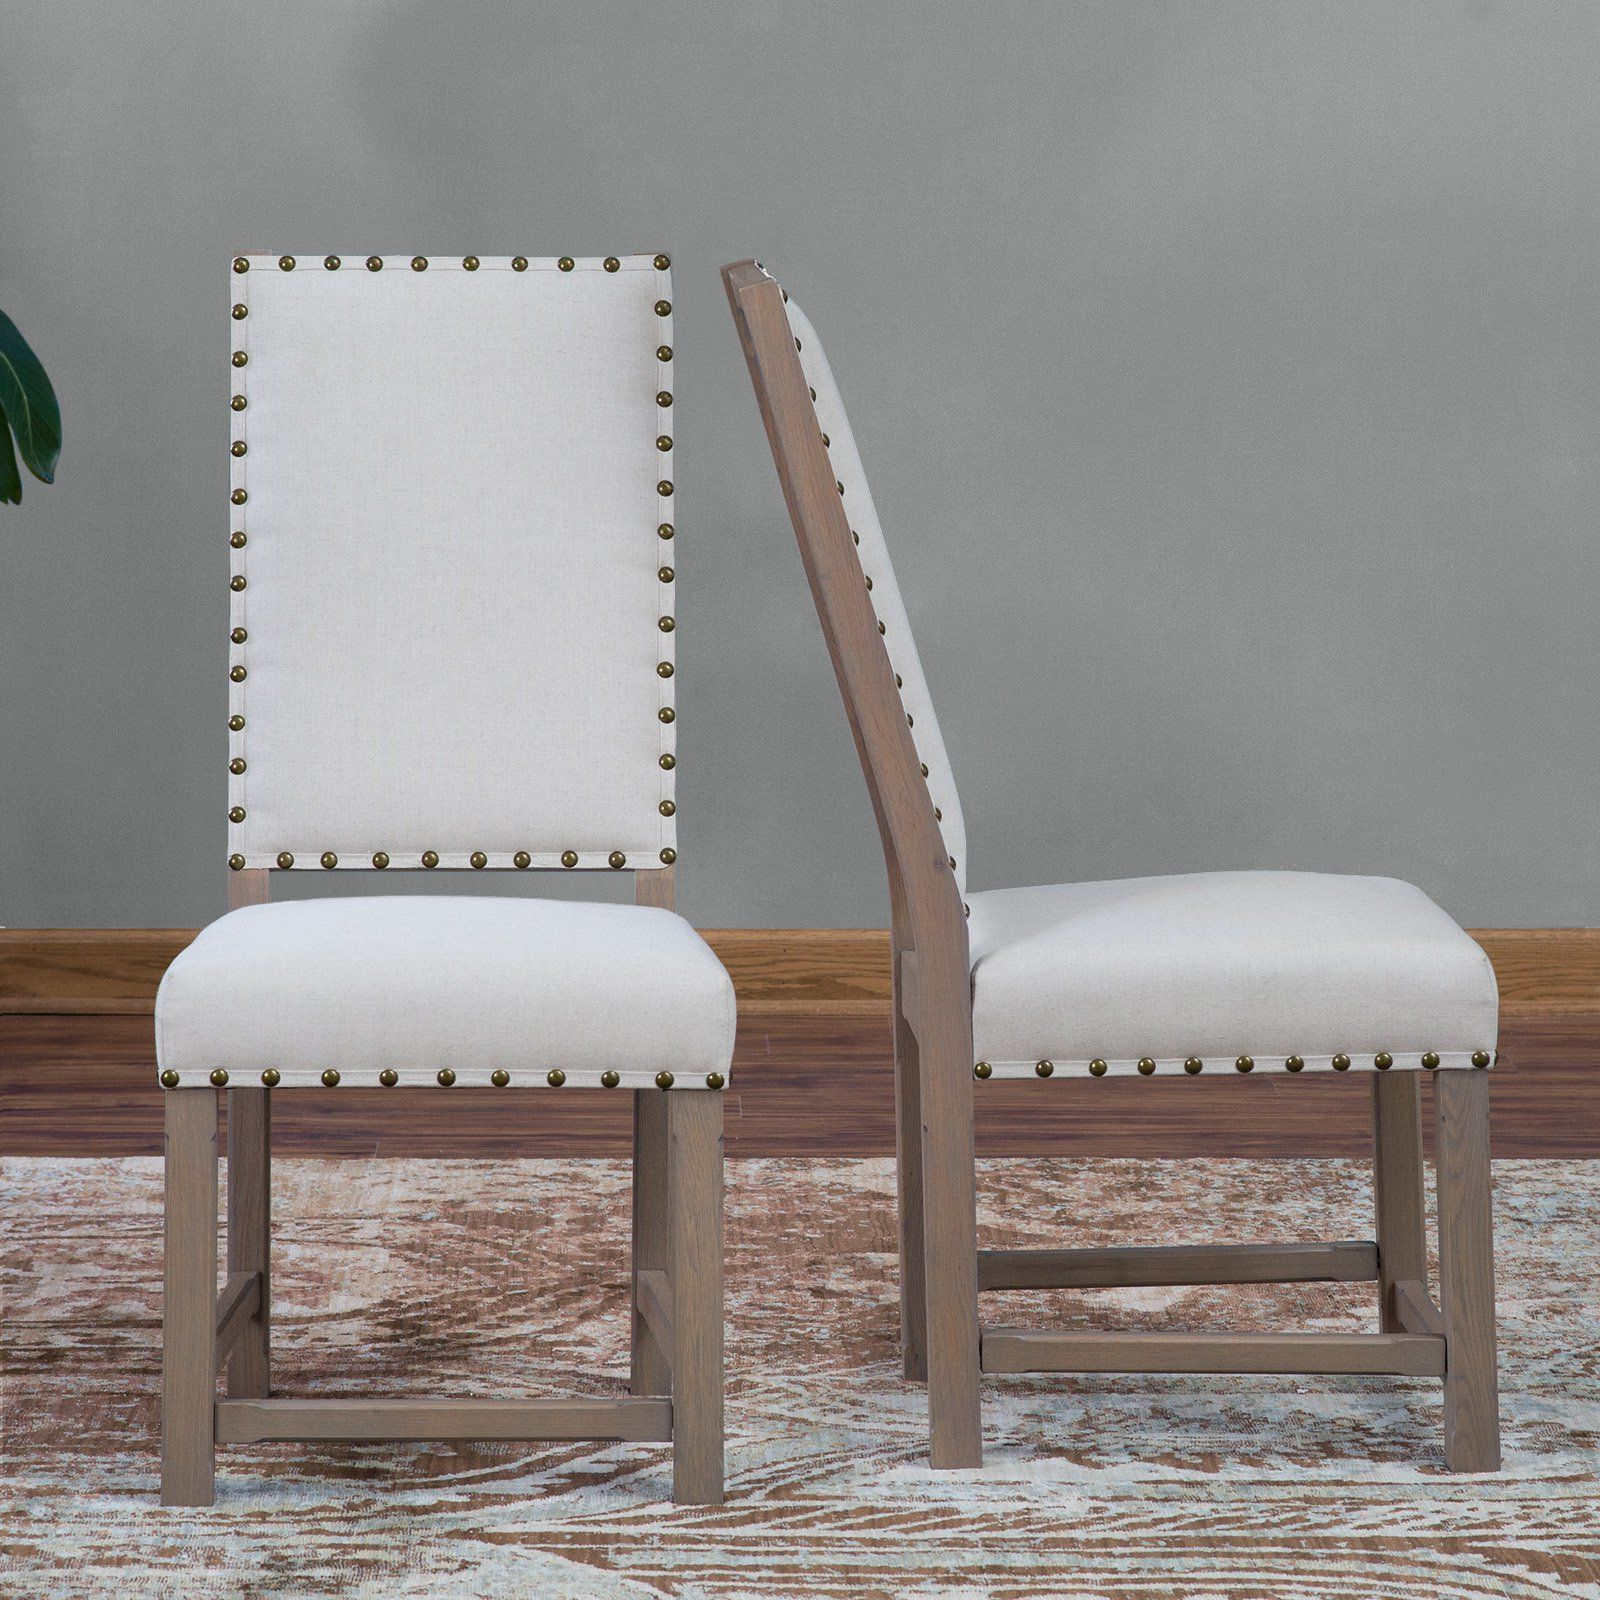 Osp Home Furnishings Preston Dining Chair In Marlow Bluebird Fabric With Silver Nailheads And Brushed Legs Bp Psac M27 The Home Depot Dining Chairs Fabric Dining Chairs Tufted Dining Chairs